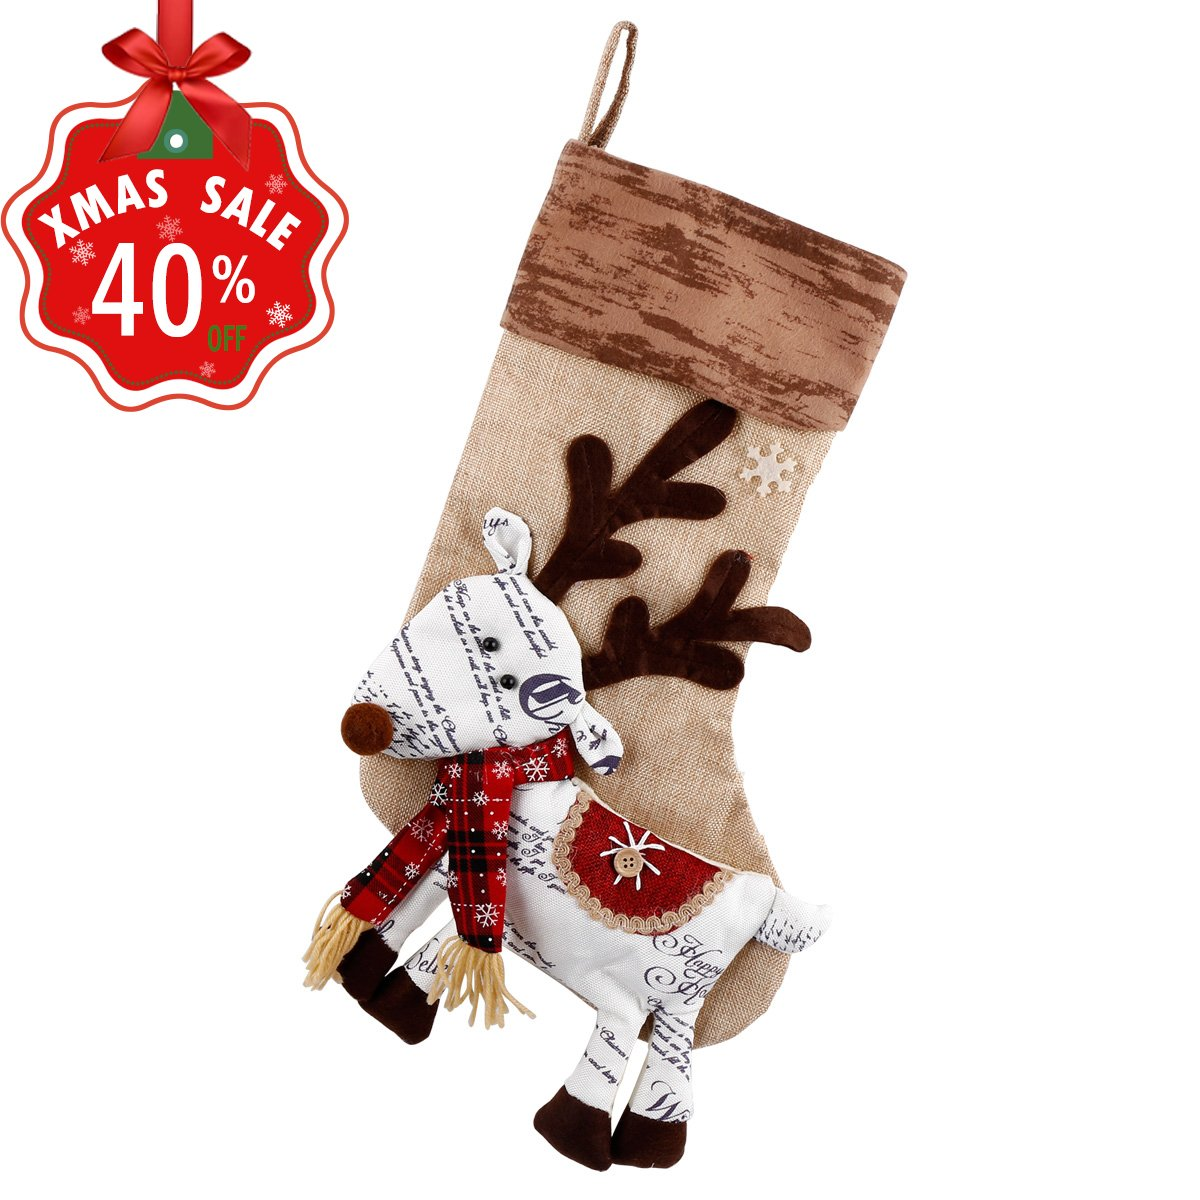 Amazon.com: Personalized Christmas Stockings Ornament Cute Reindeer ...